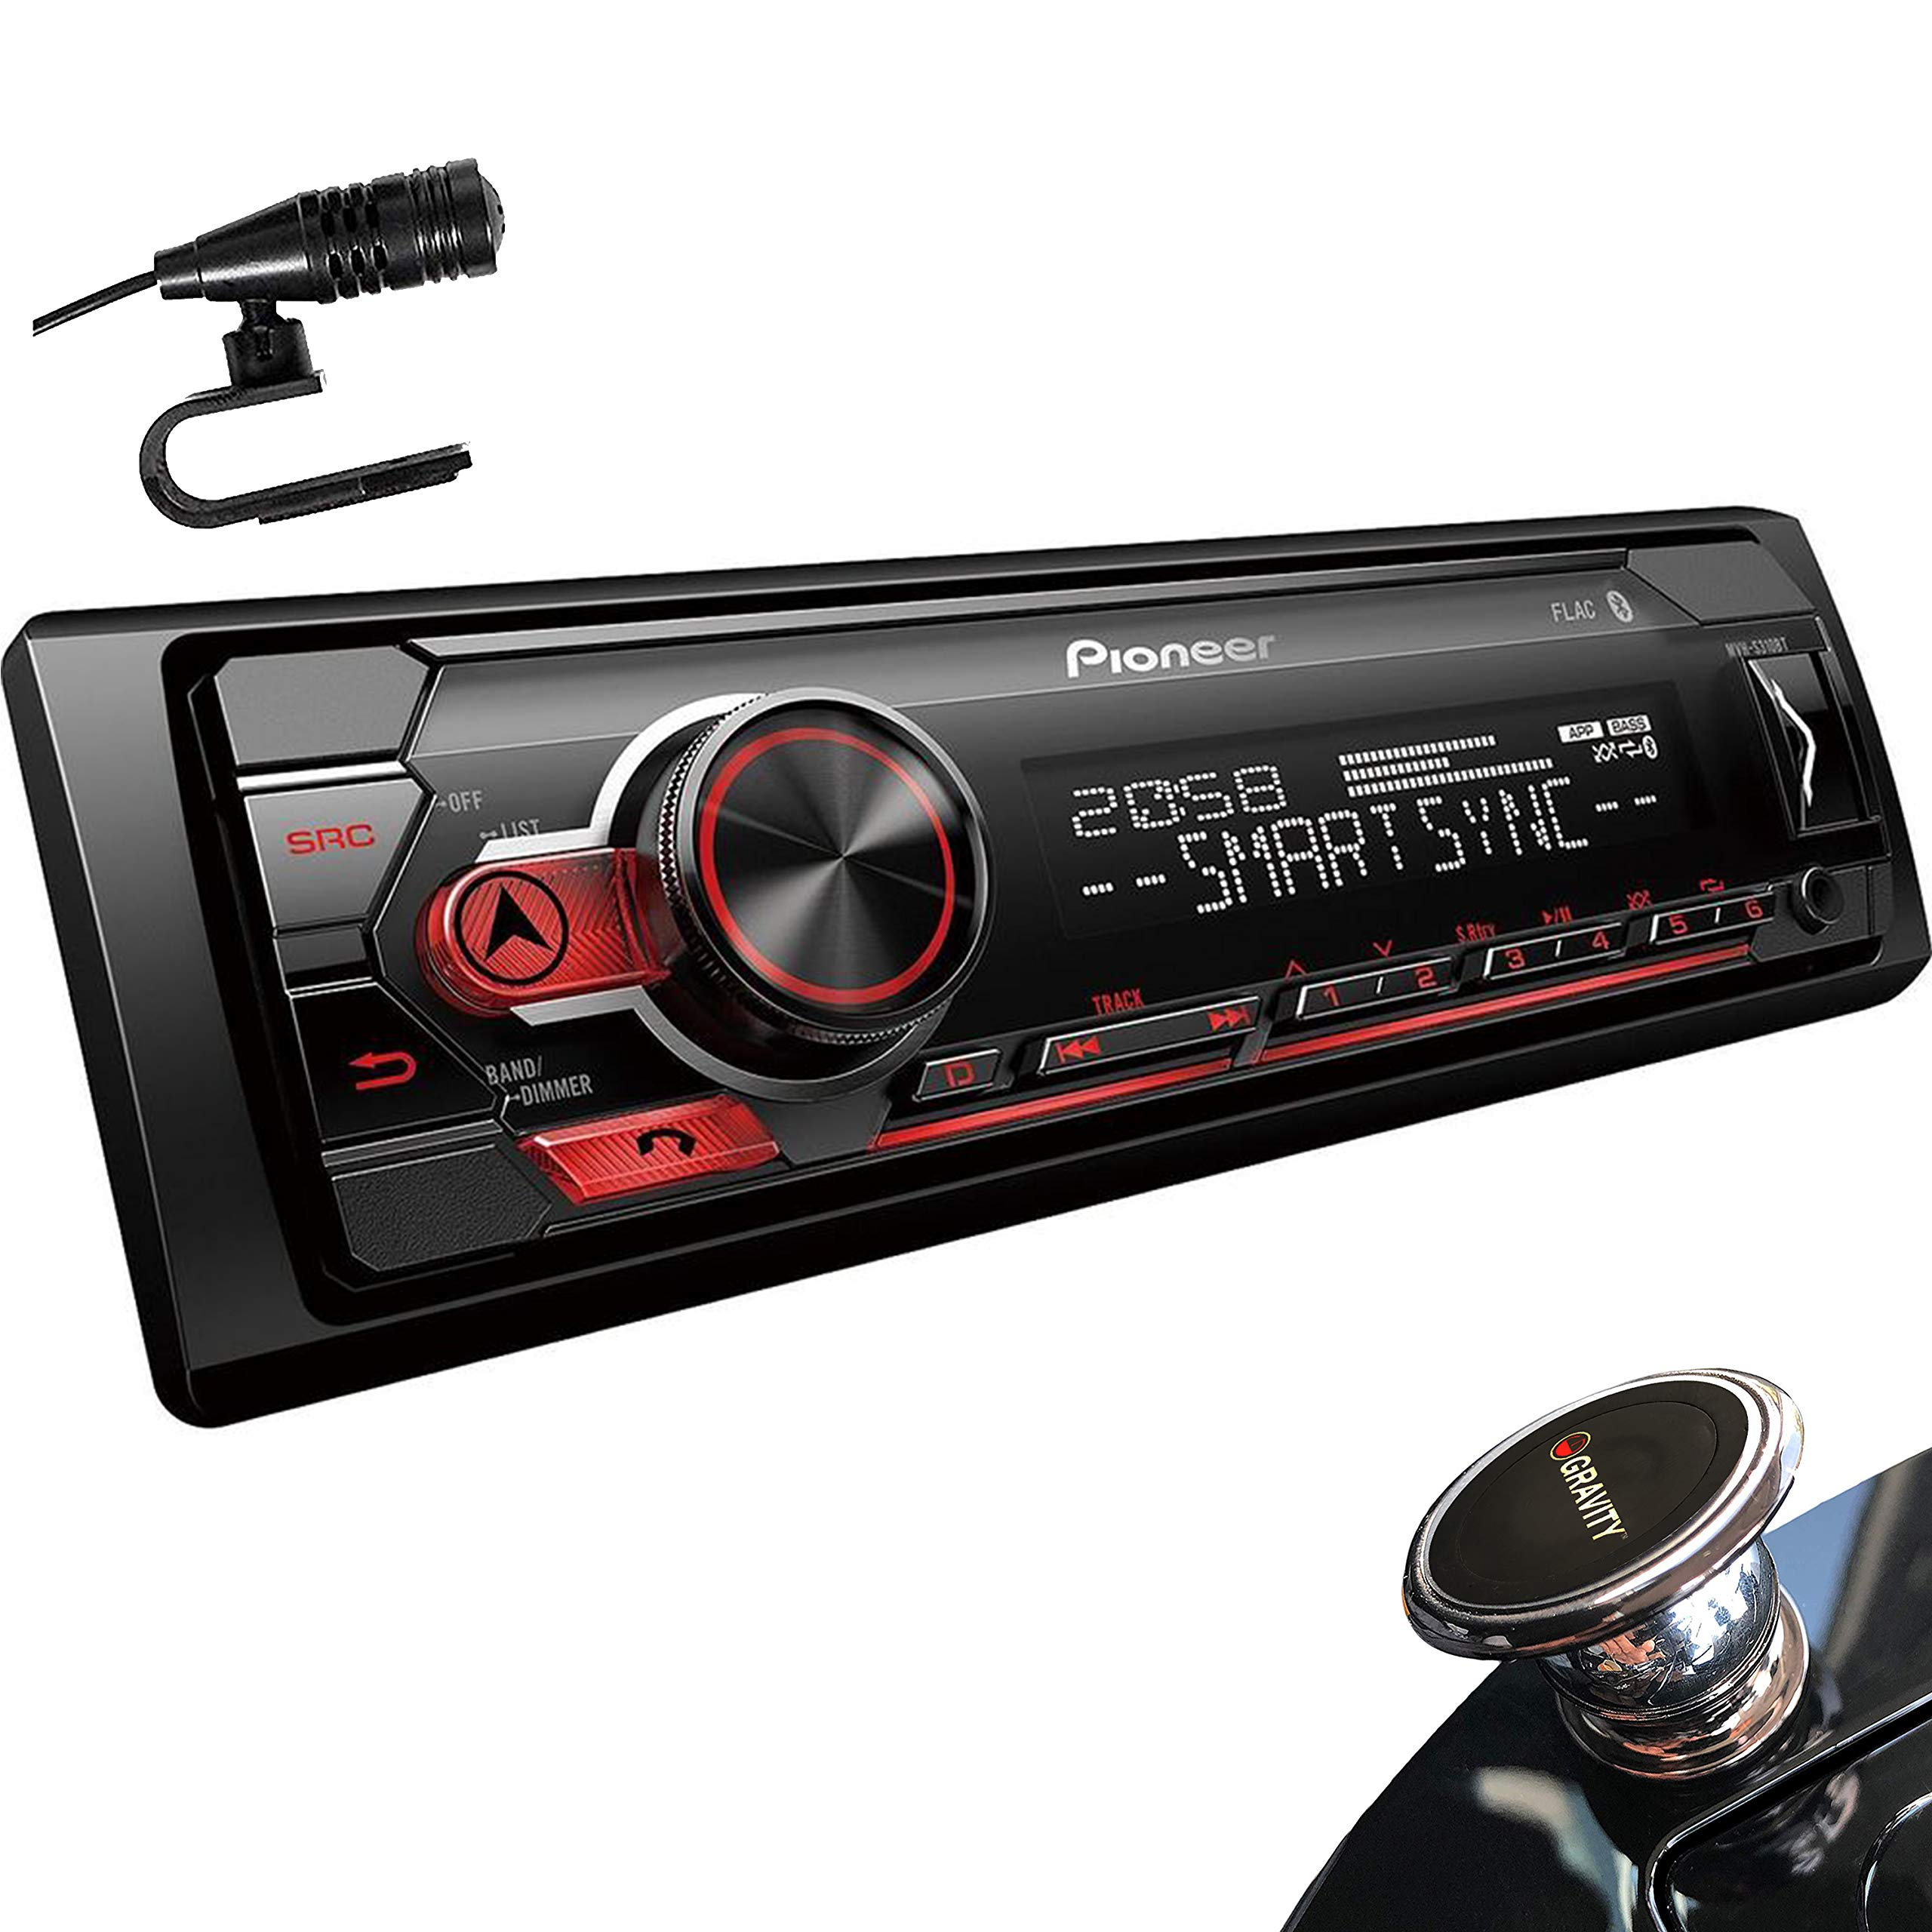 Pioneer MVH-S310BT Digital Media Receiver with Smart Sync App Compatibility, MIXTRAX, Built-in Bluetooth + Gravity Phone Holder by PIONEER